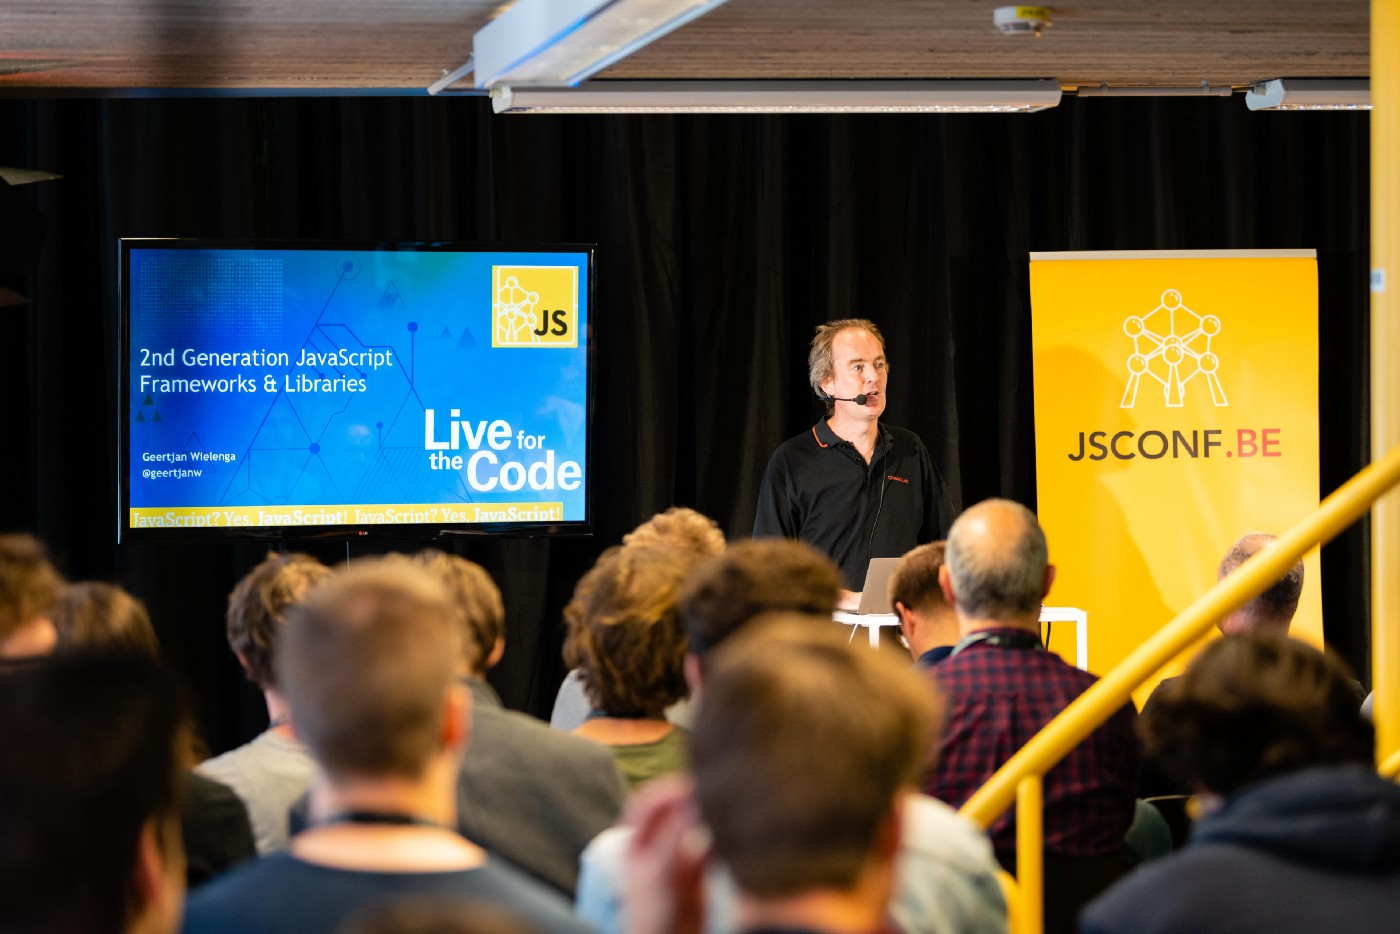 2nd Generation JavaScript Frameworks & Libraries by Geertjan Wielenga